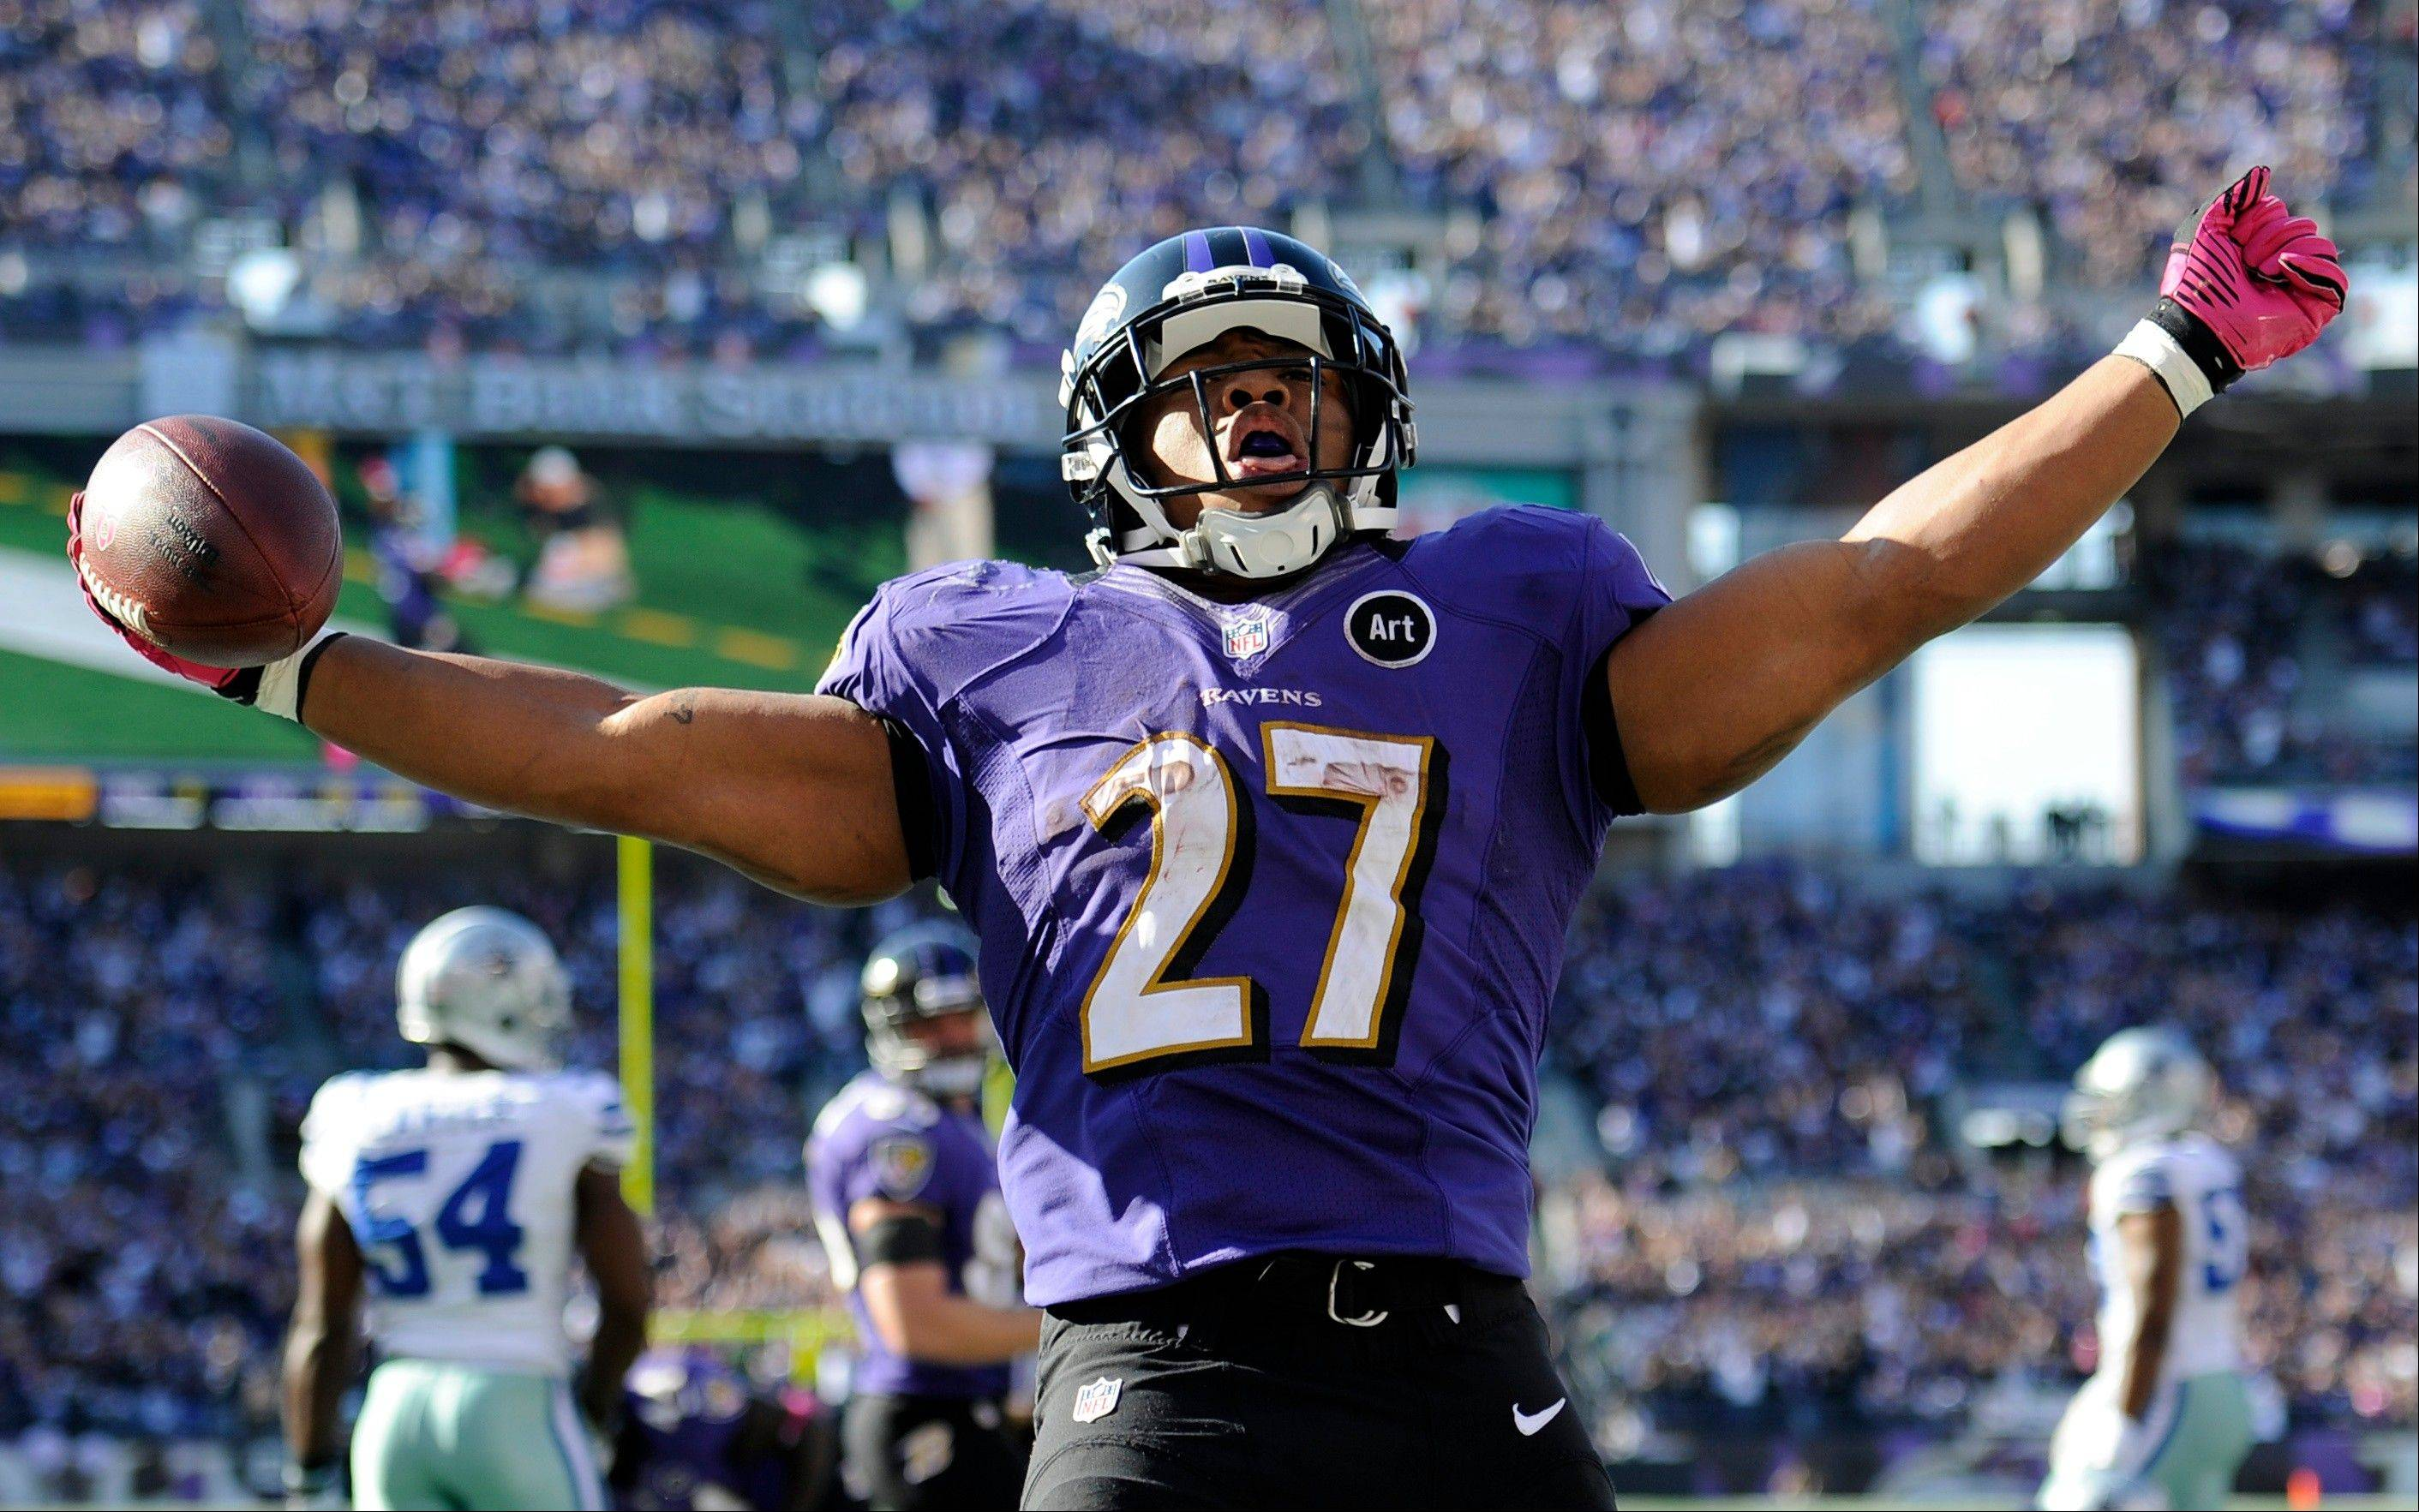 Baltimore Ravens running back Ray Rice reacts after scoring a touchdown in the second half of an NFL football game against the Dallas Cowboys in Baltimore, Sunday.